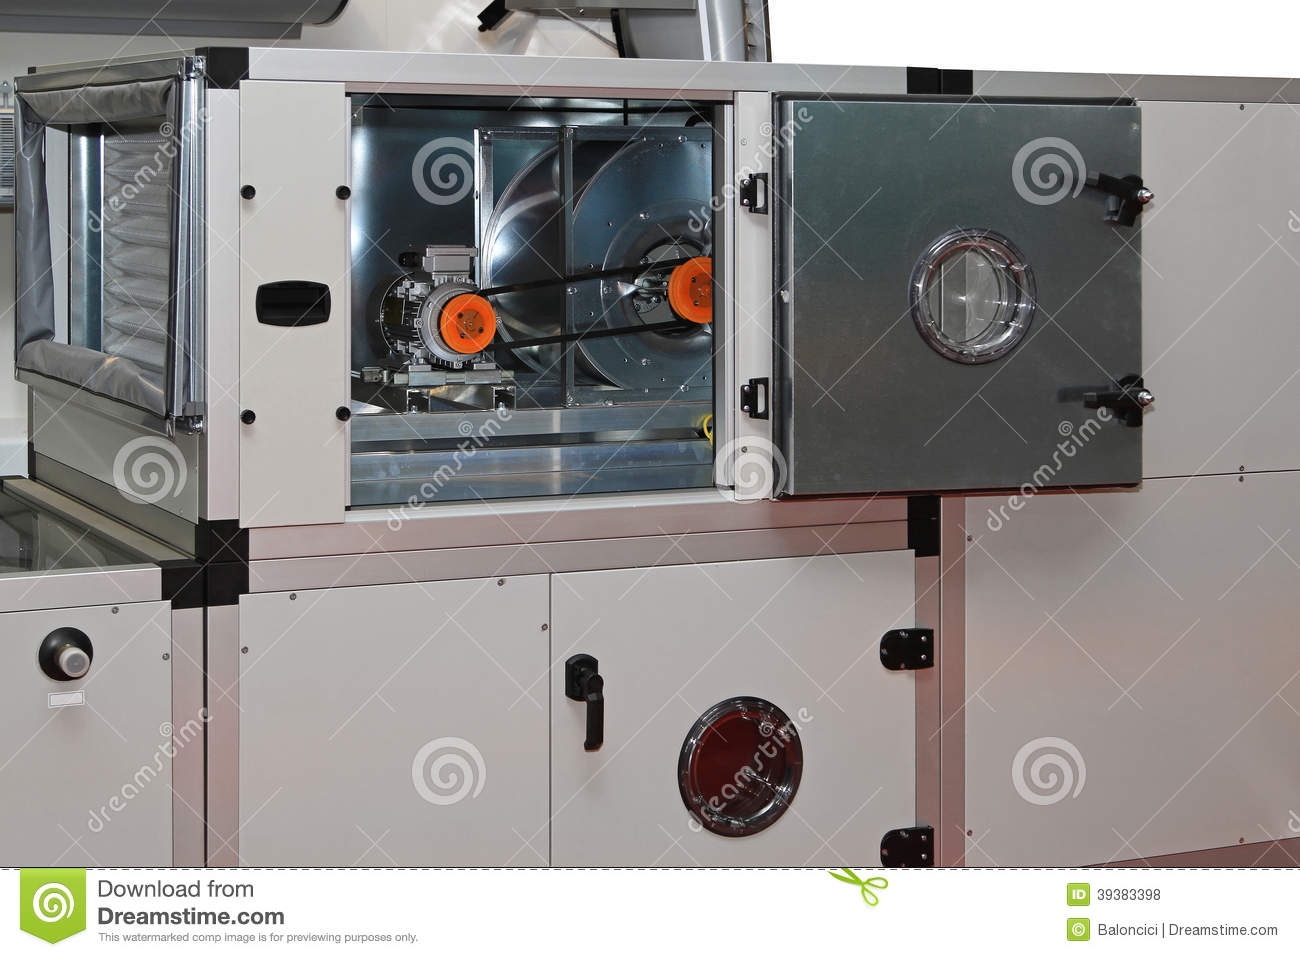 Air handling units in central ventilation system. #6B483D